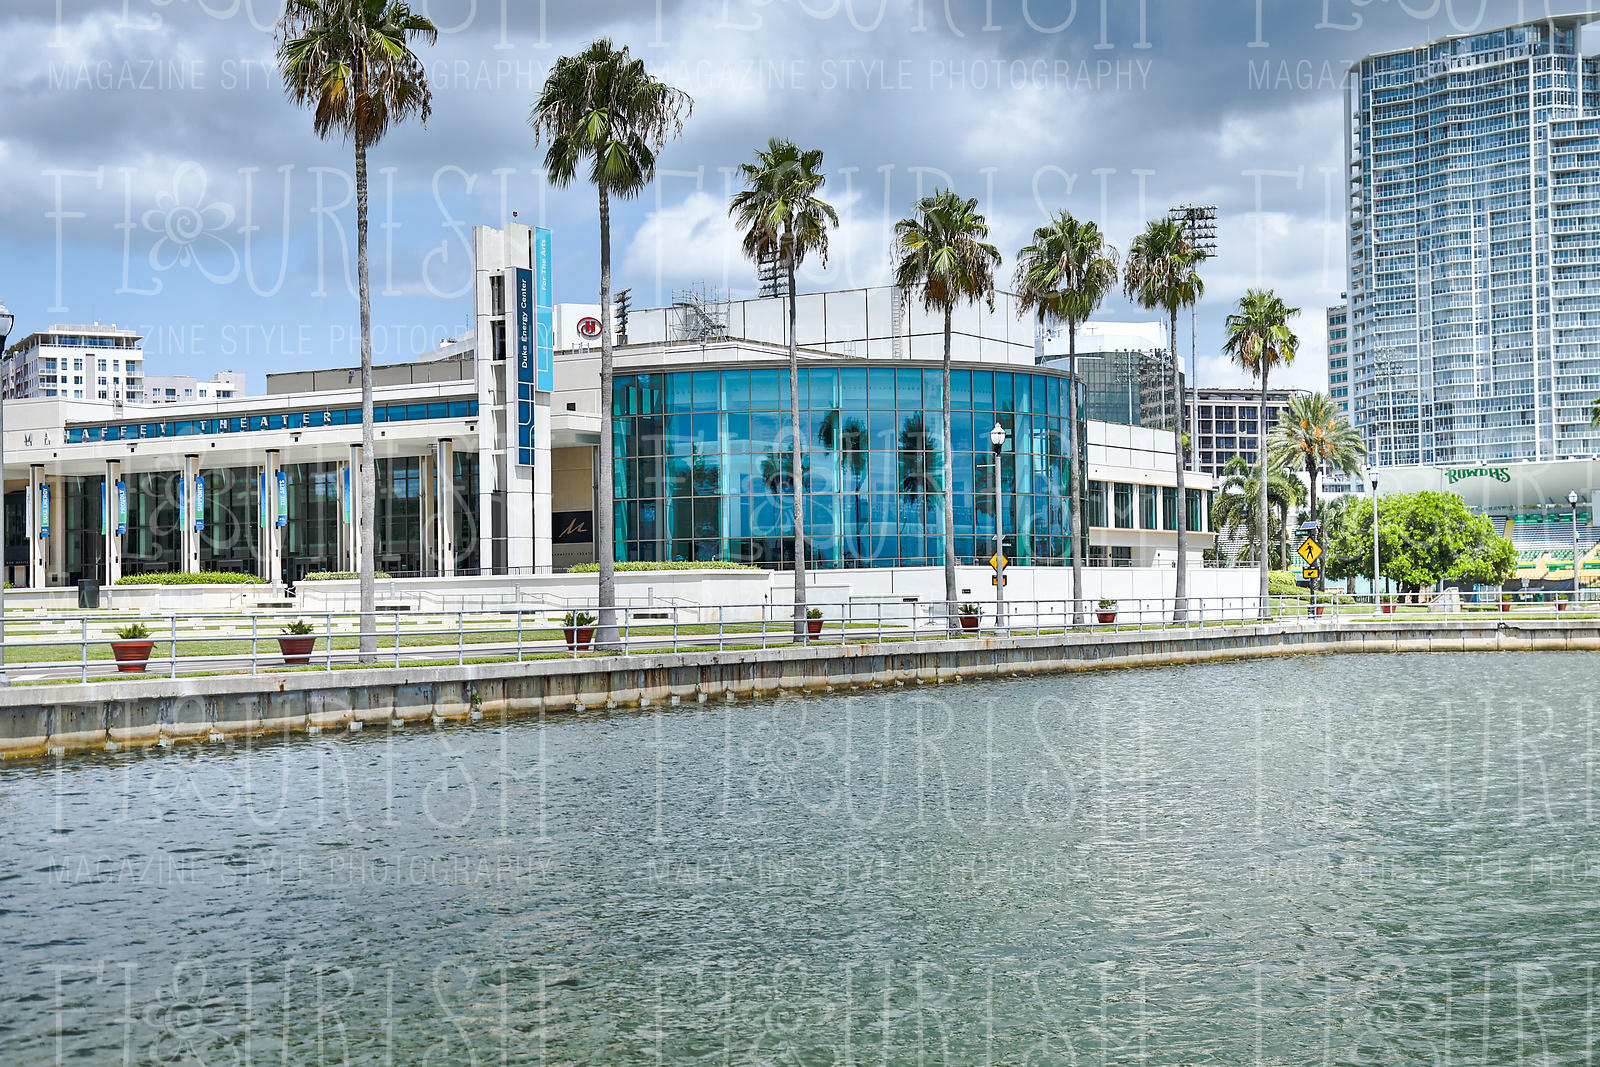 Architectural_St_Pete_Mahaffey_Skyline-1